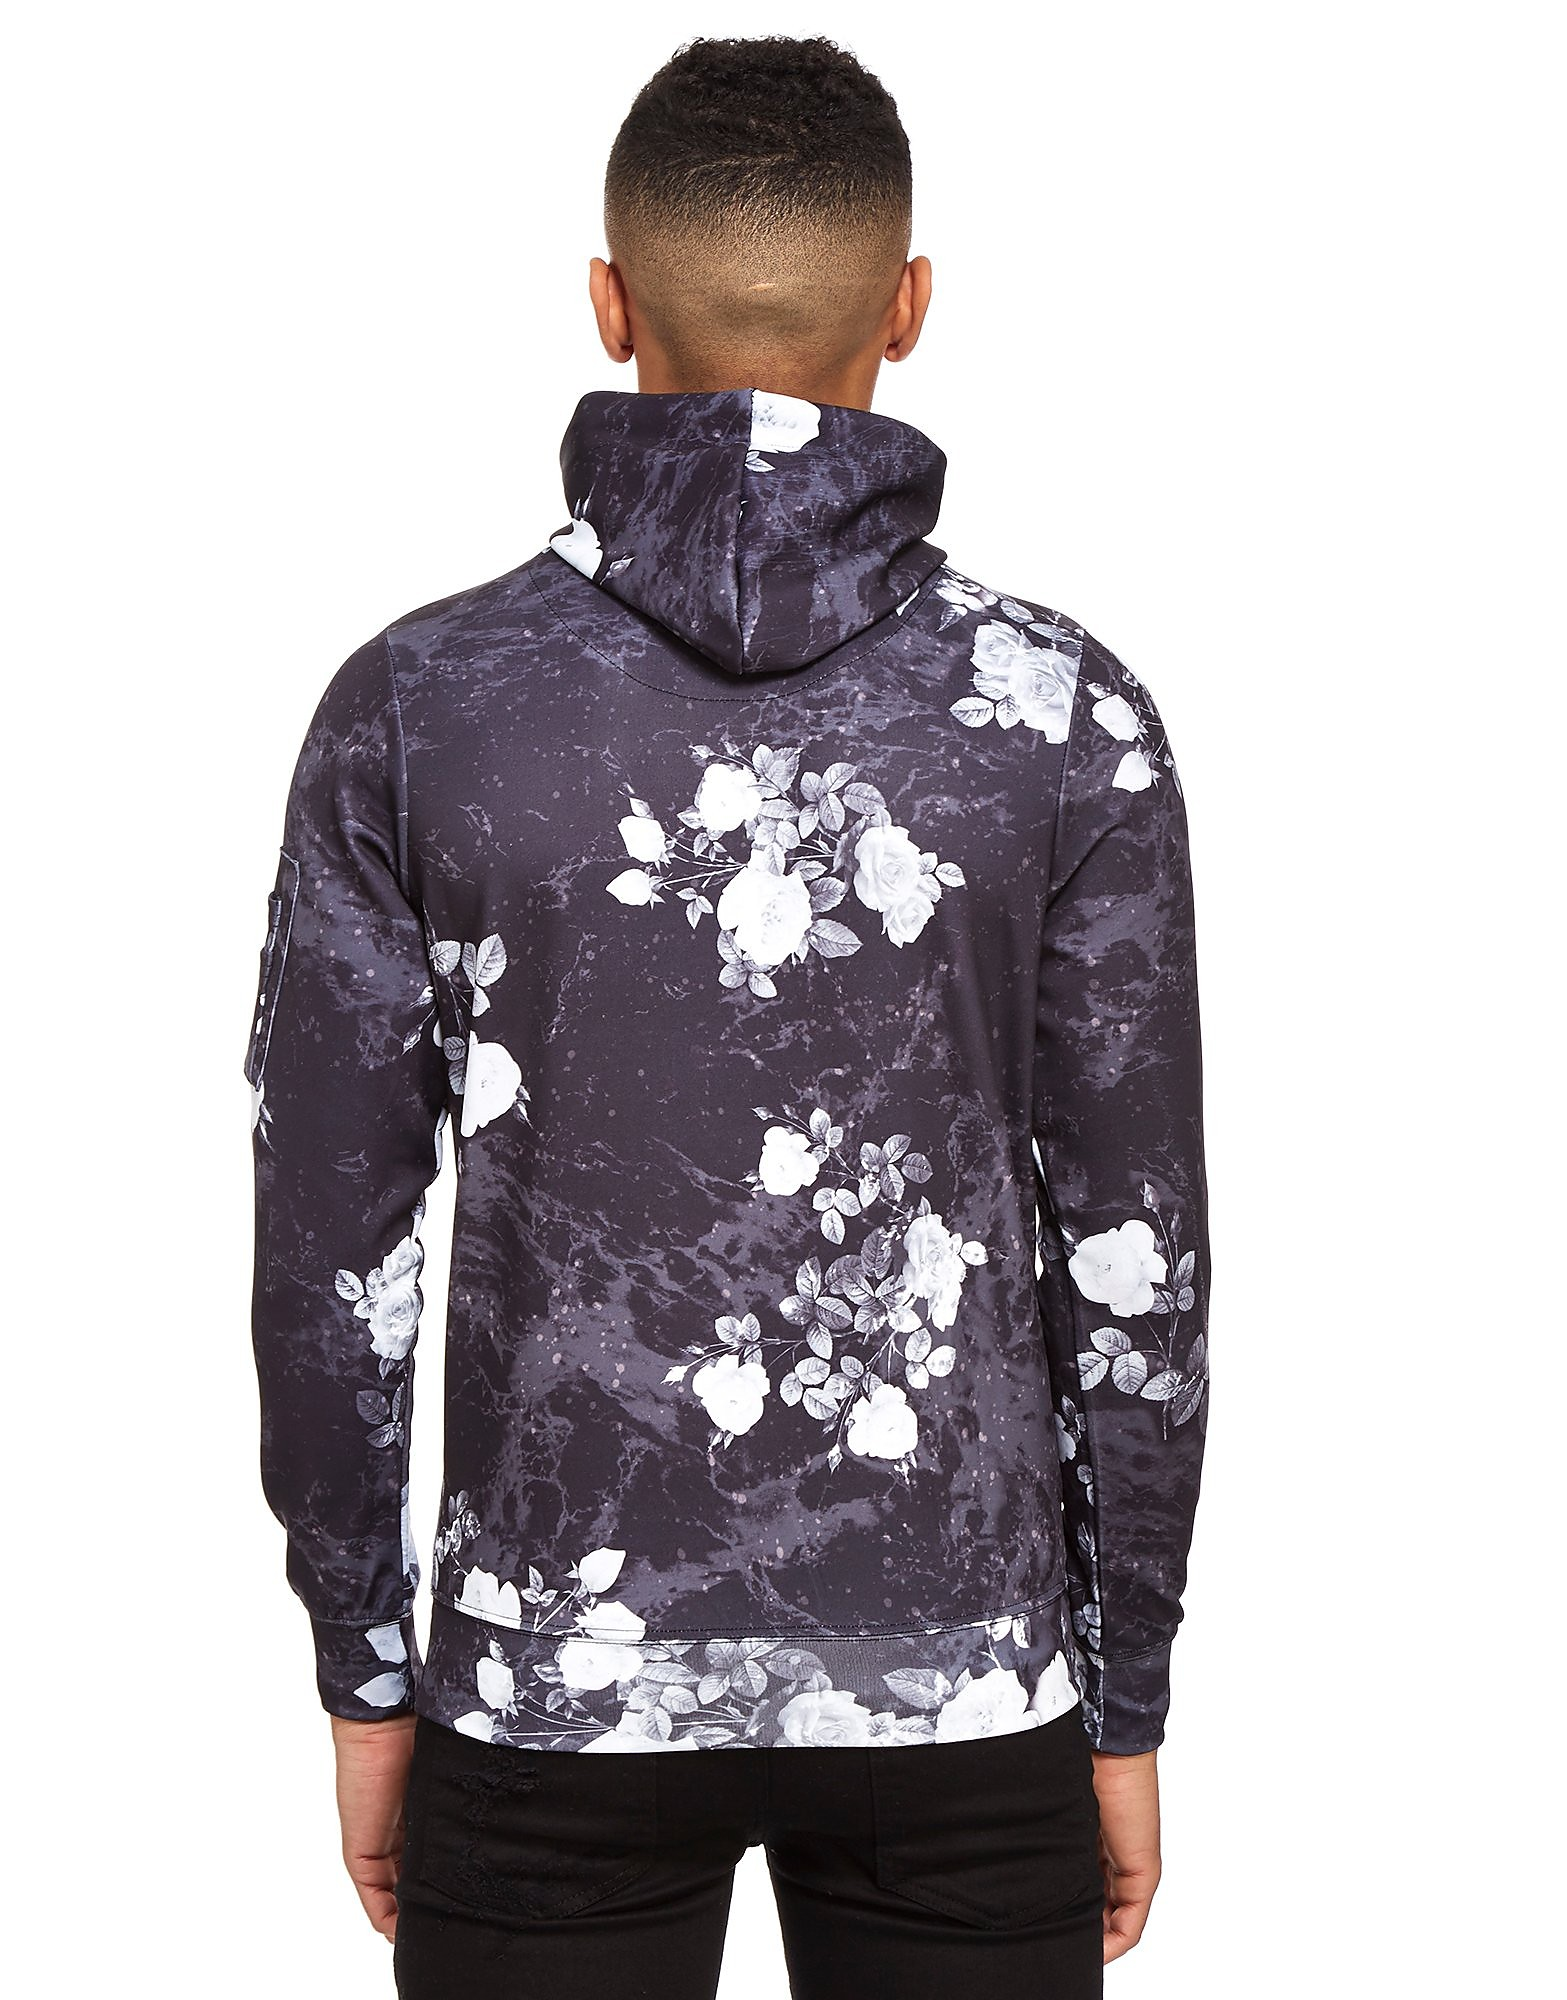 Supply & Demand Dark Marble Hoody